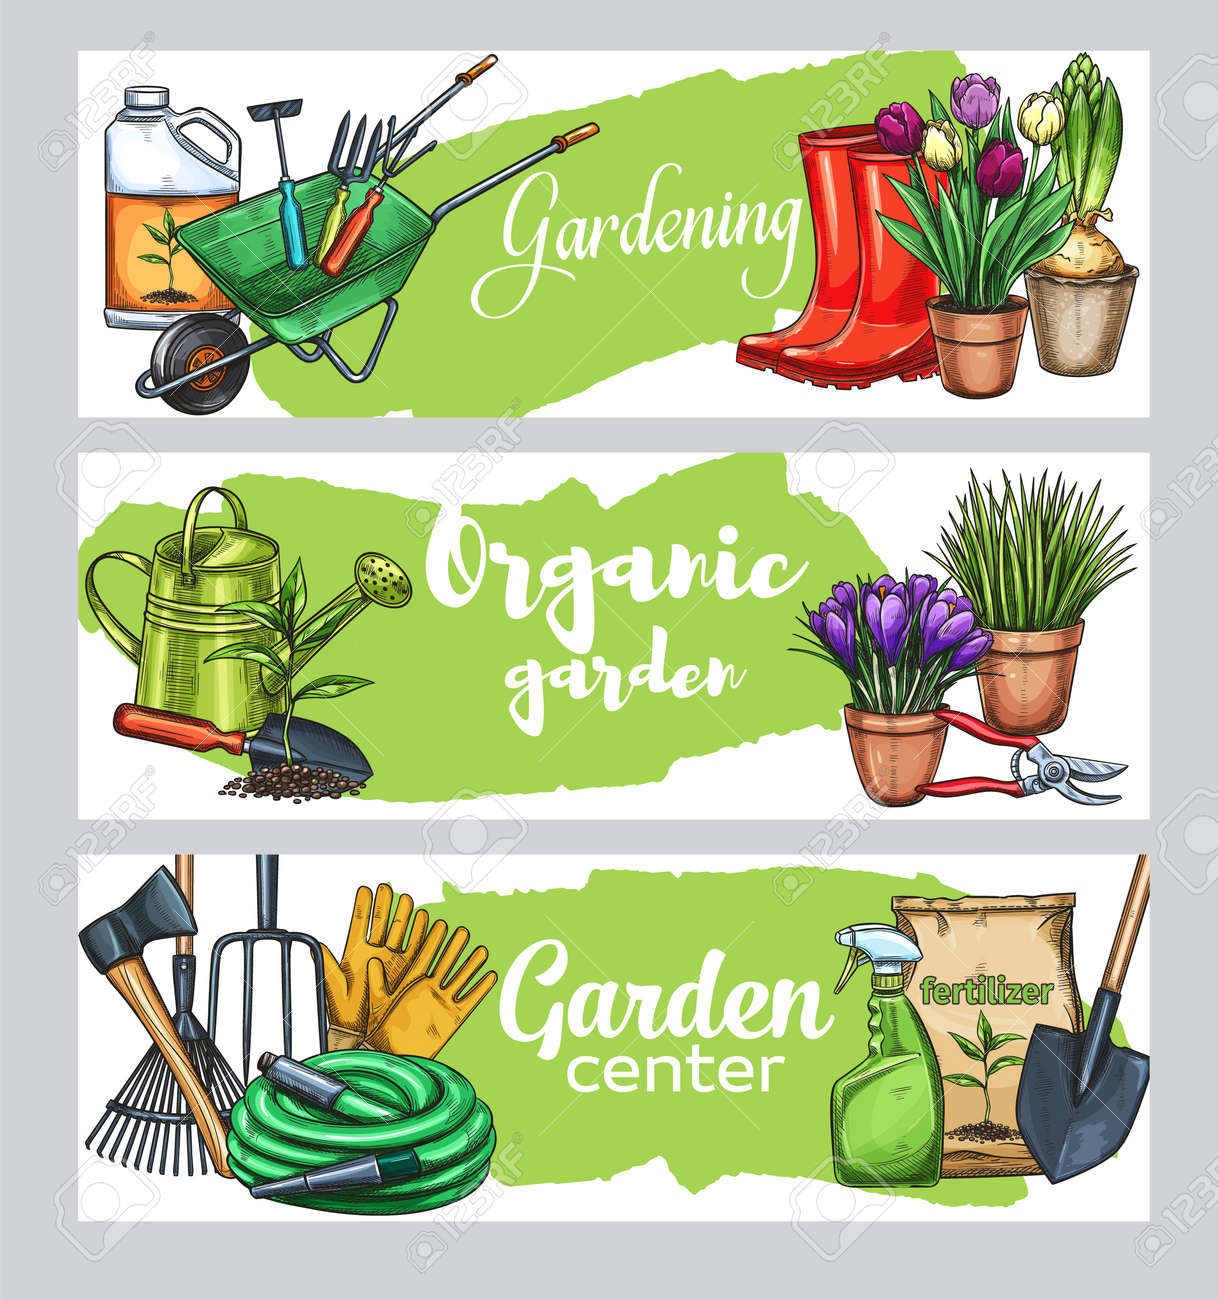 Gardening Banners With Tools Flowers Rubber Boots Seedling Royalty Free Cliparts Vectors And Stock Illustration Image 113511440